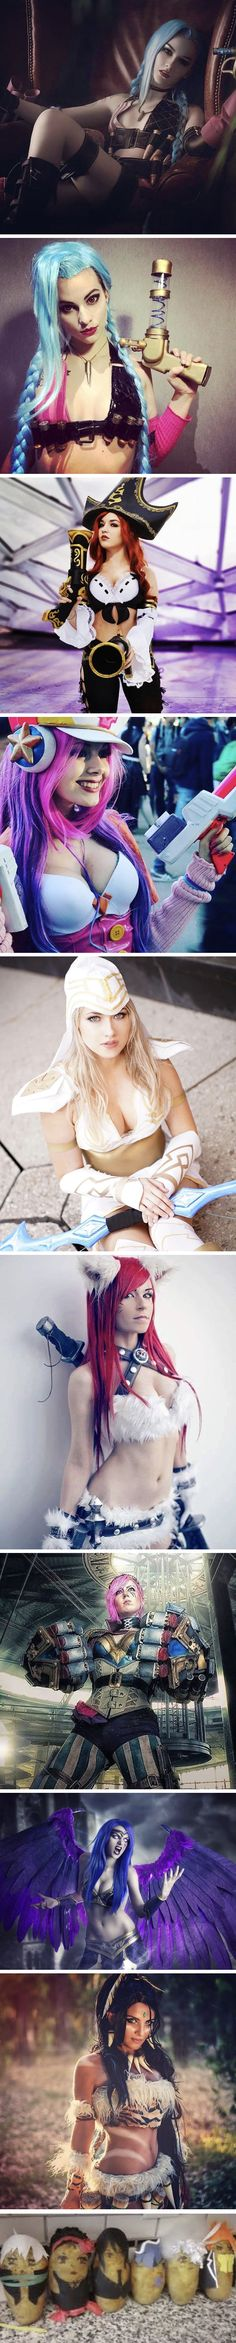 The best LOL girls cosplay ever!